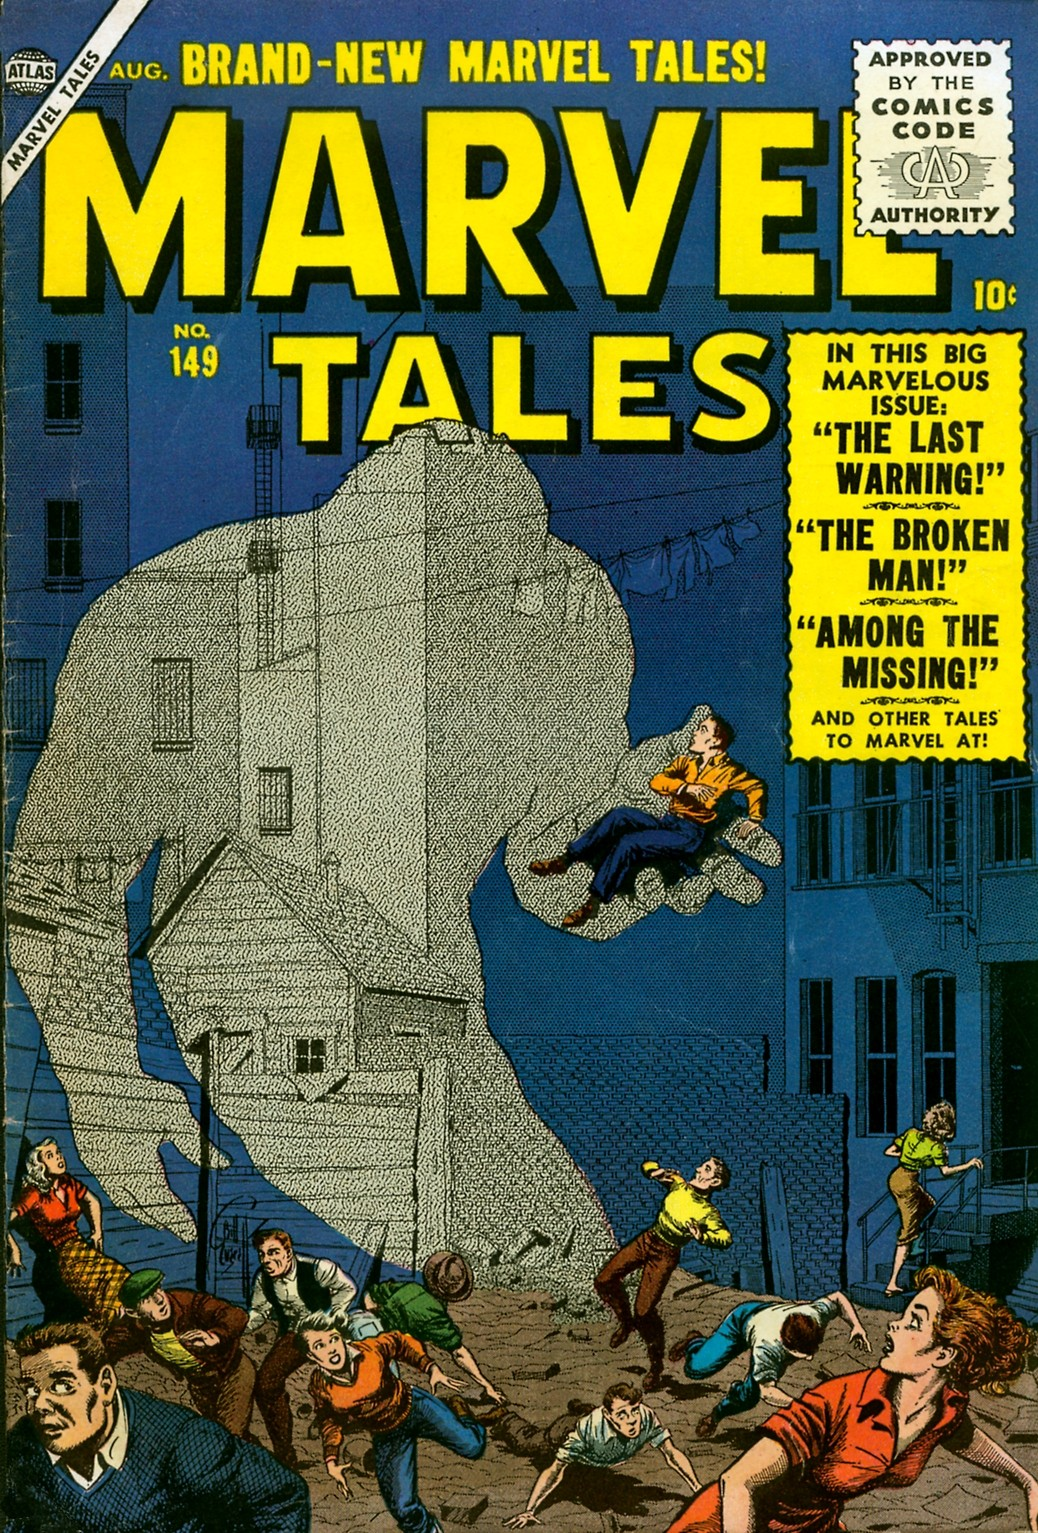 Marvel Tales (1949) 149 Page 1